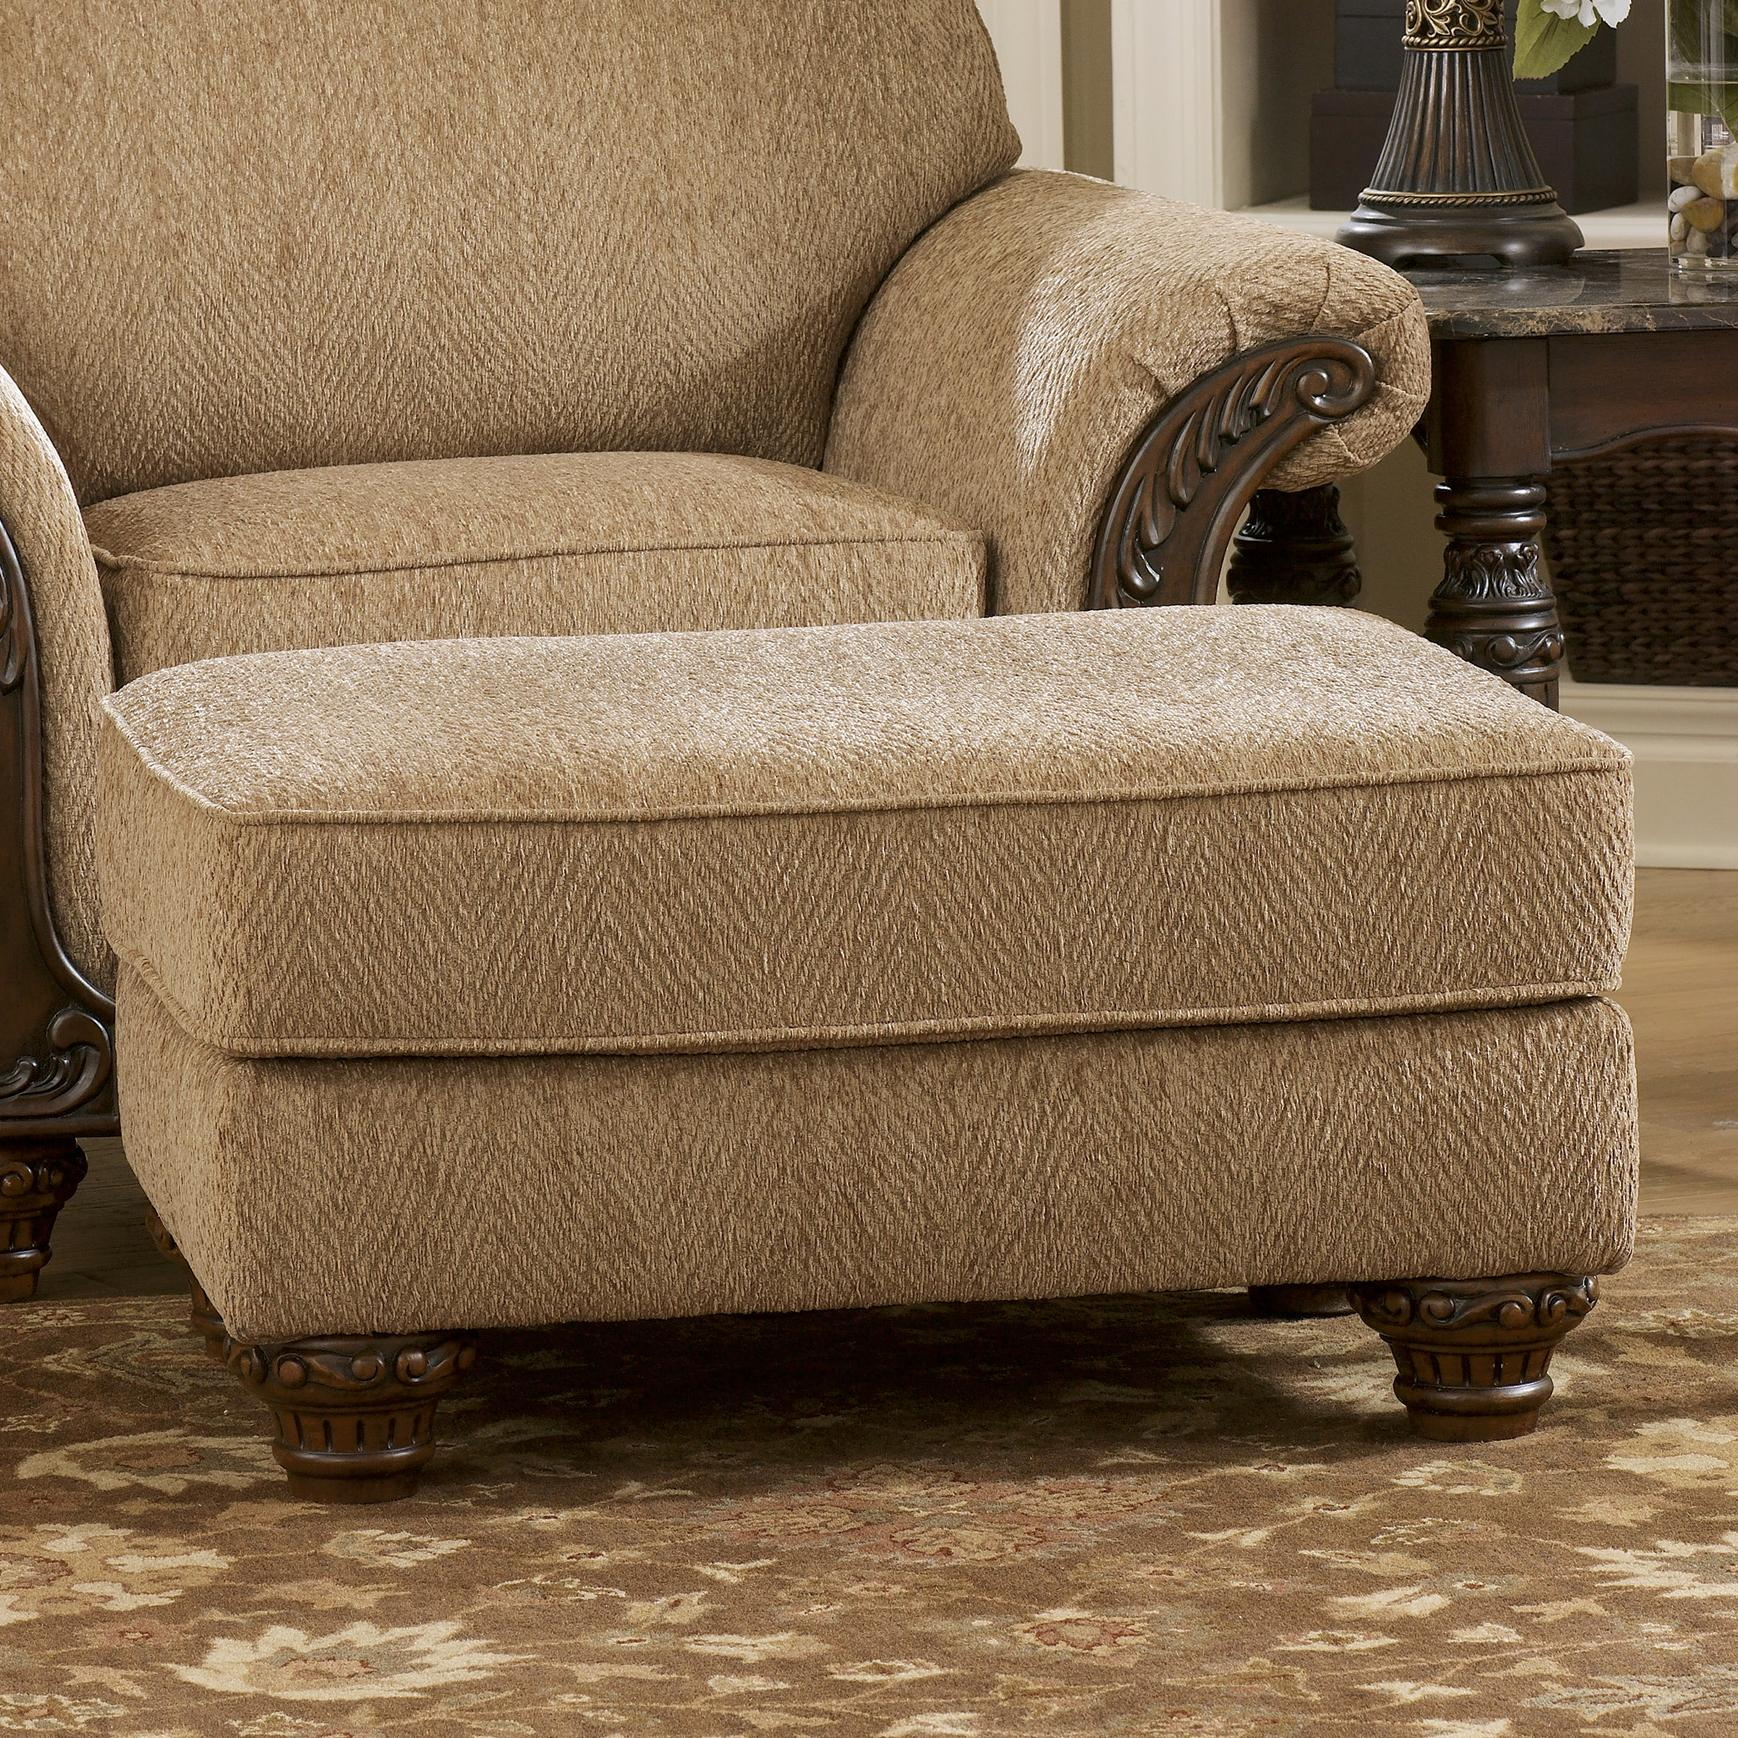 Signature Design by Ashley Cambridge - Amber Ottoman - Item Number: 3940114